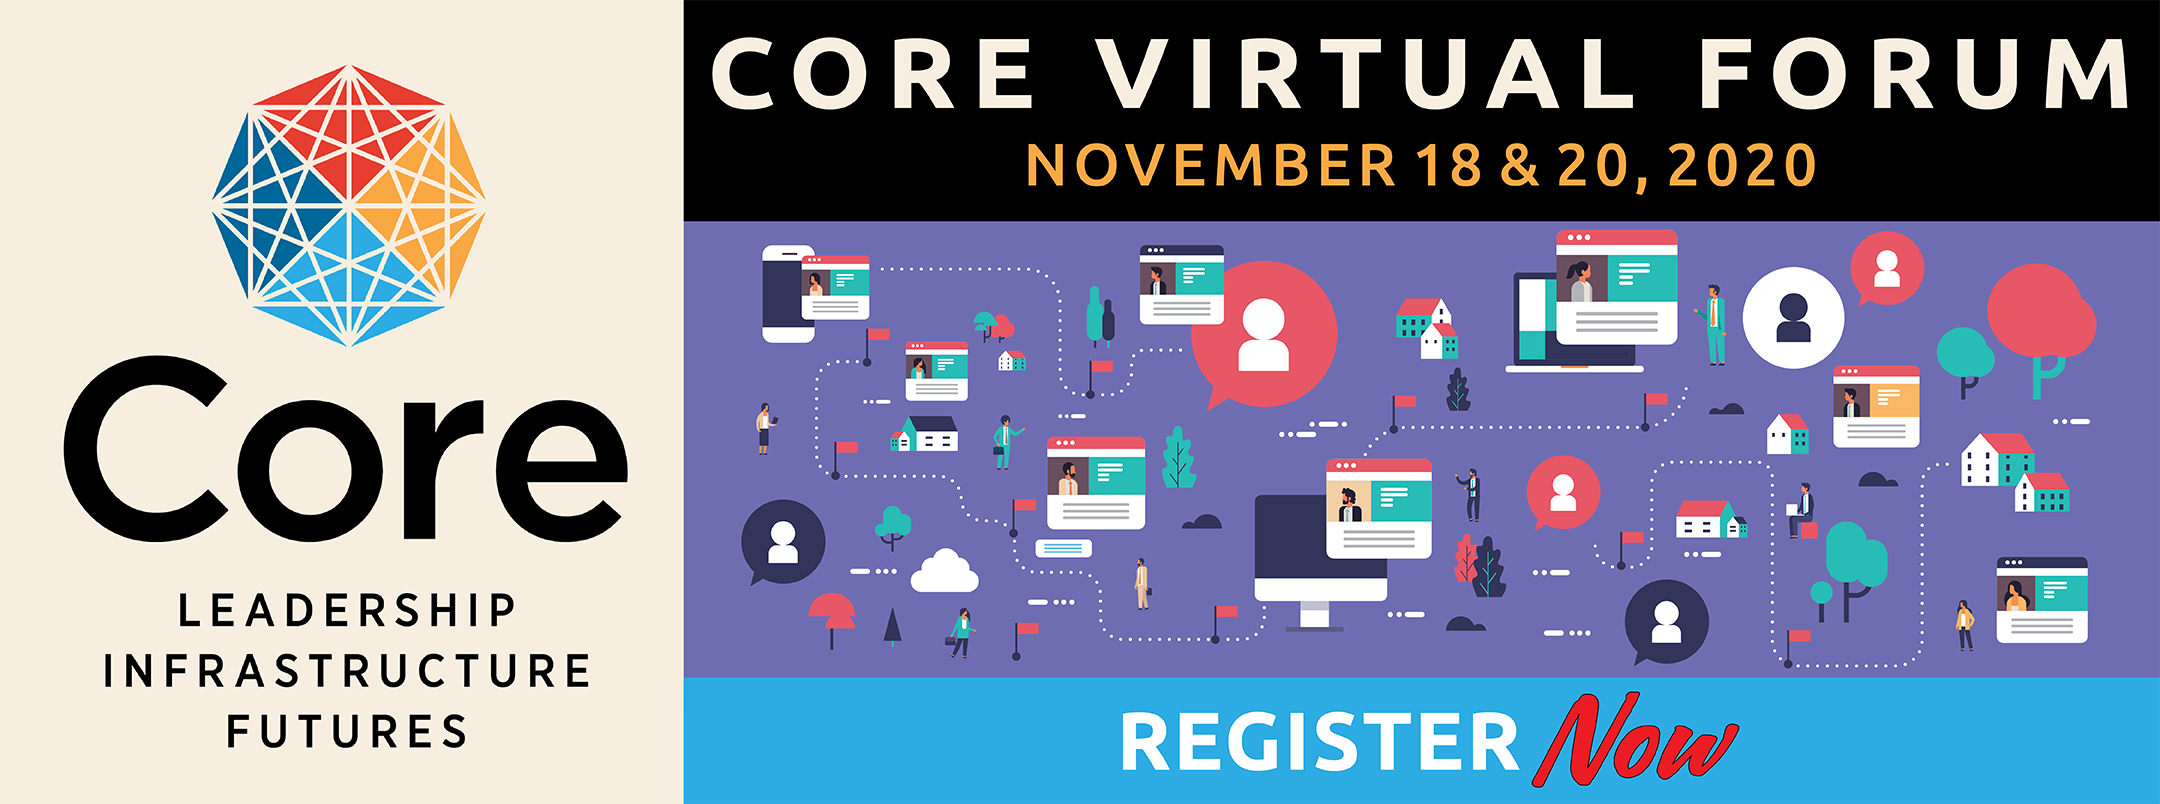 Early-bird Registration for Core Virtual Forum ends on October 9!